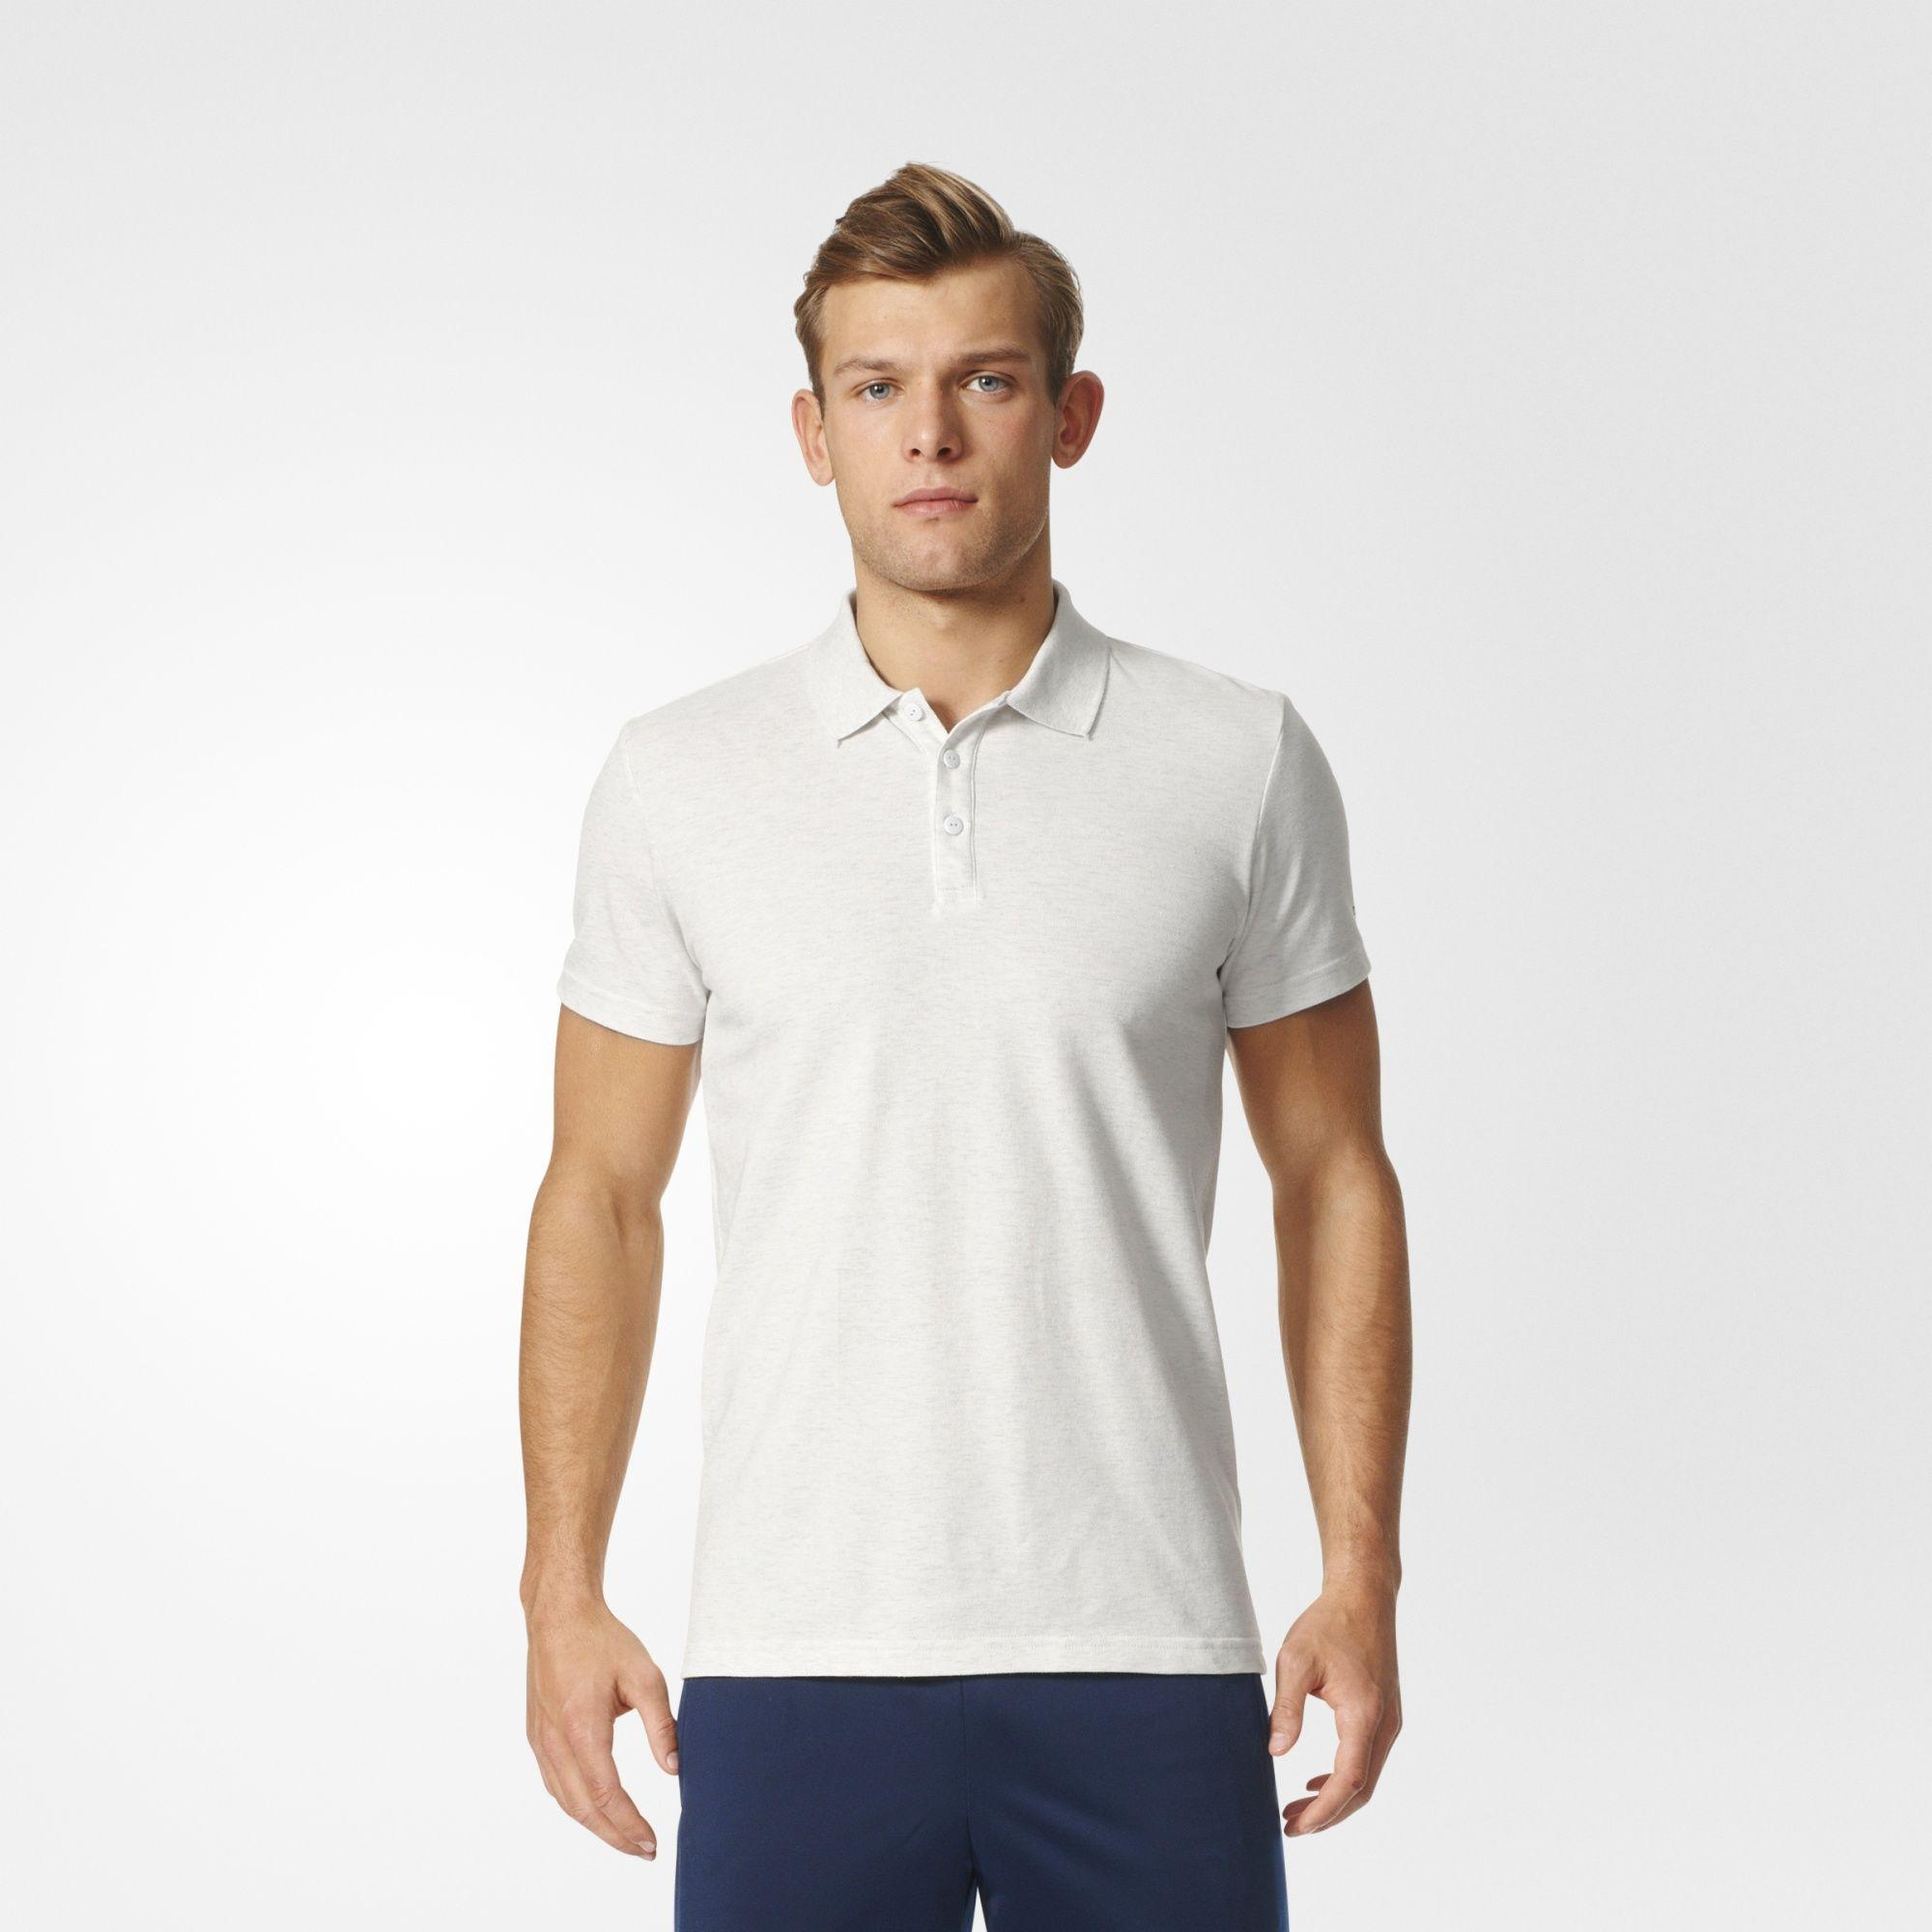 Herren Essentials Basic Poloshirt